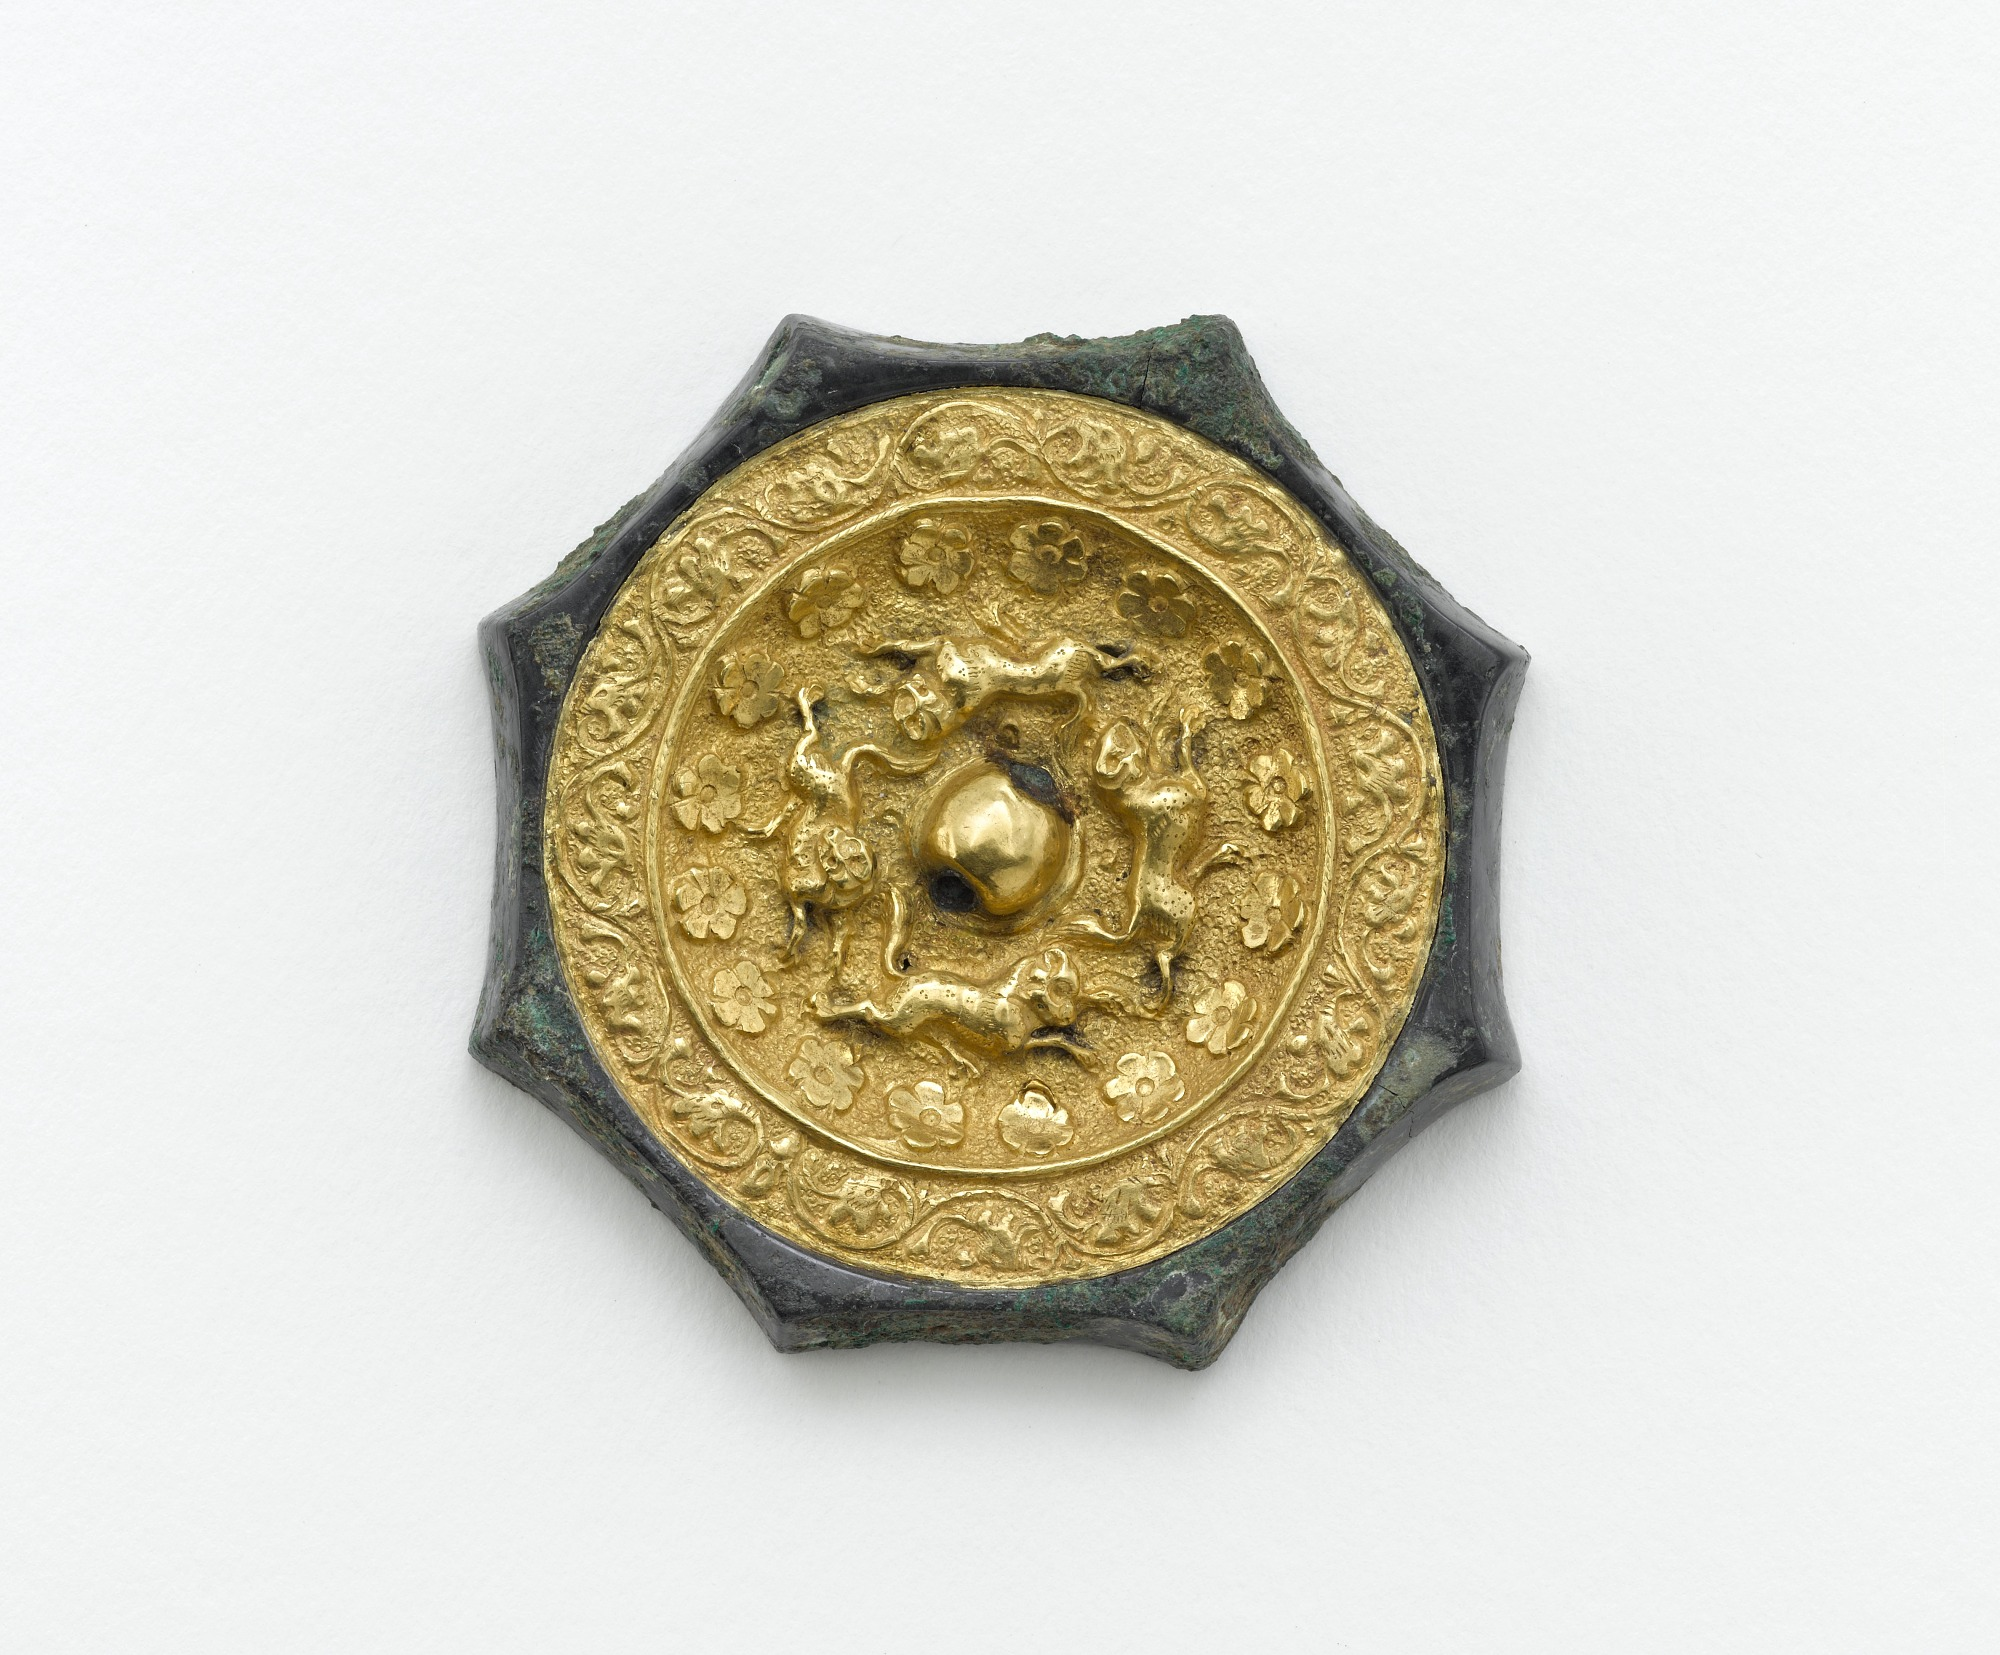 : Octagonal mirror with animals, flowerets, and floral scrolls